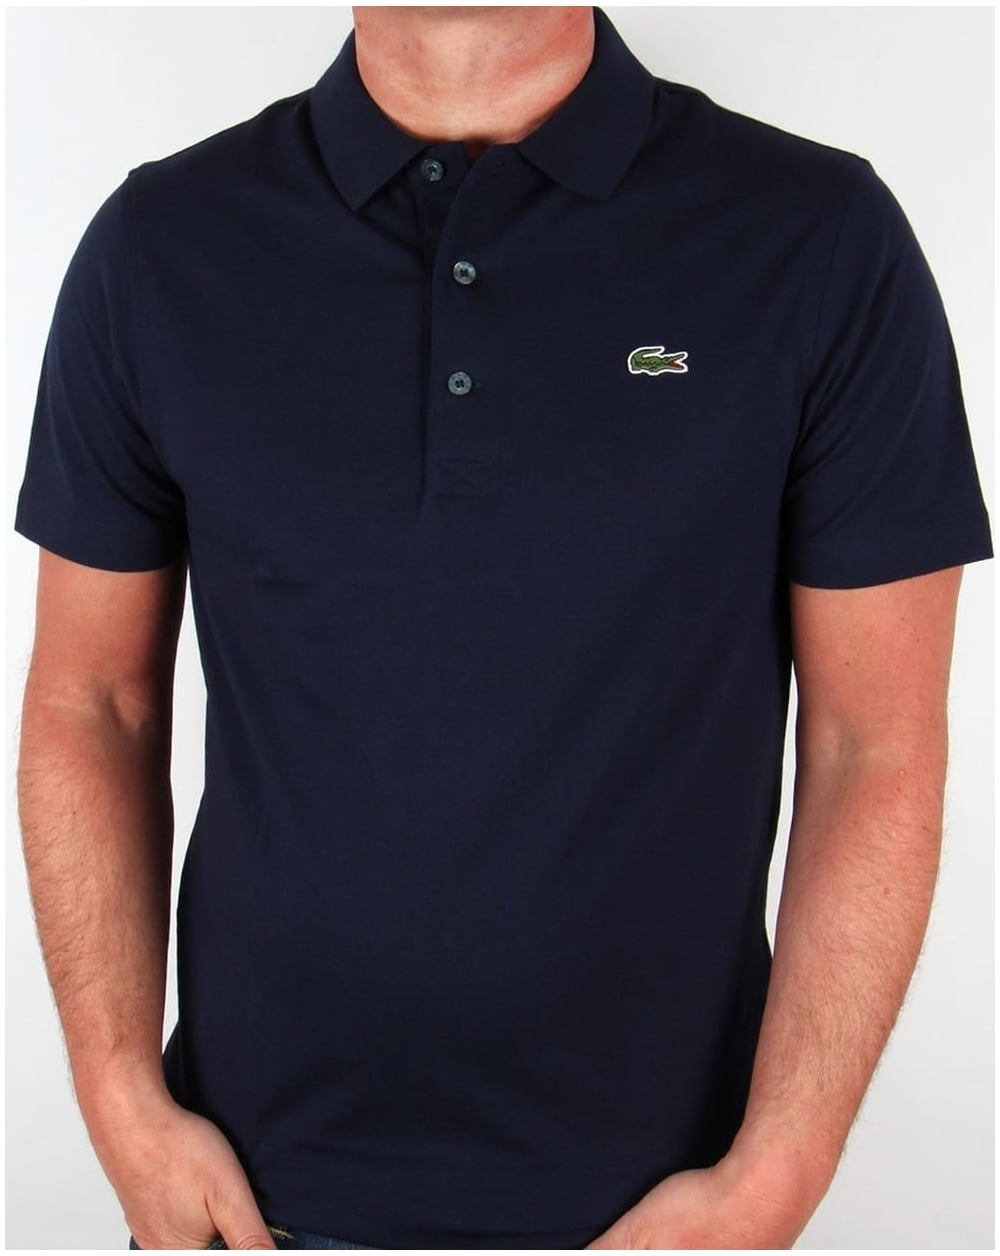 lacoste polo shirt navy short sleeve old skool retro. Black Bedroom Furniture Sets. Home Design Ideas